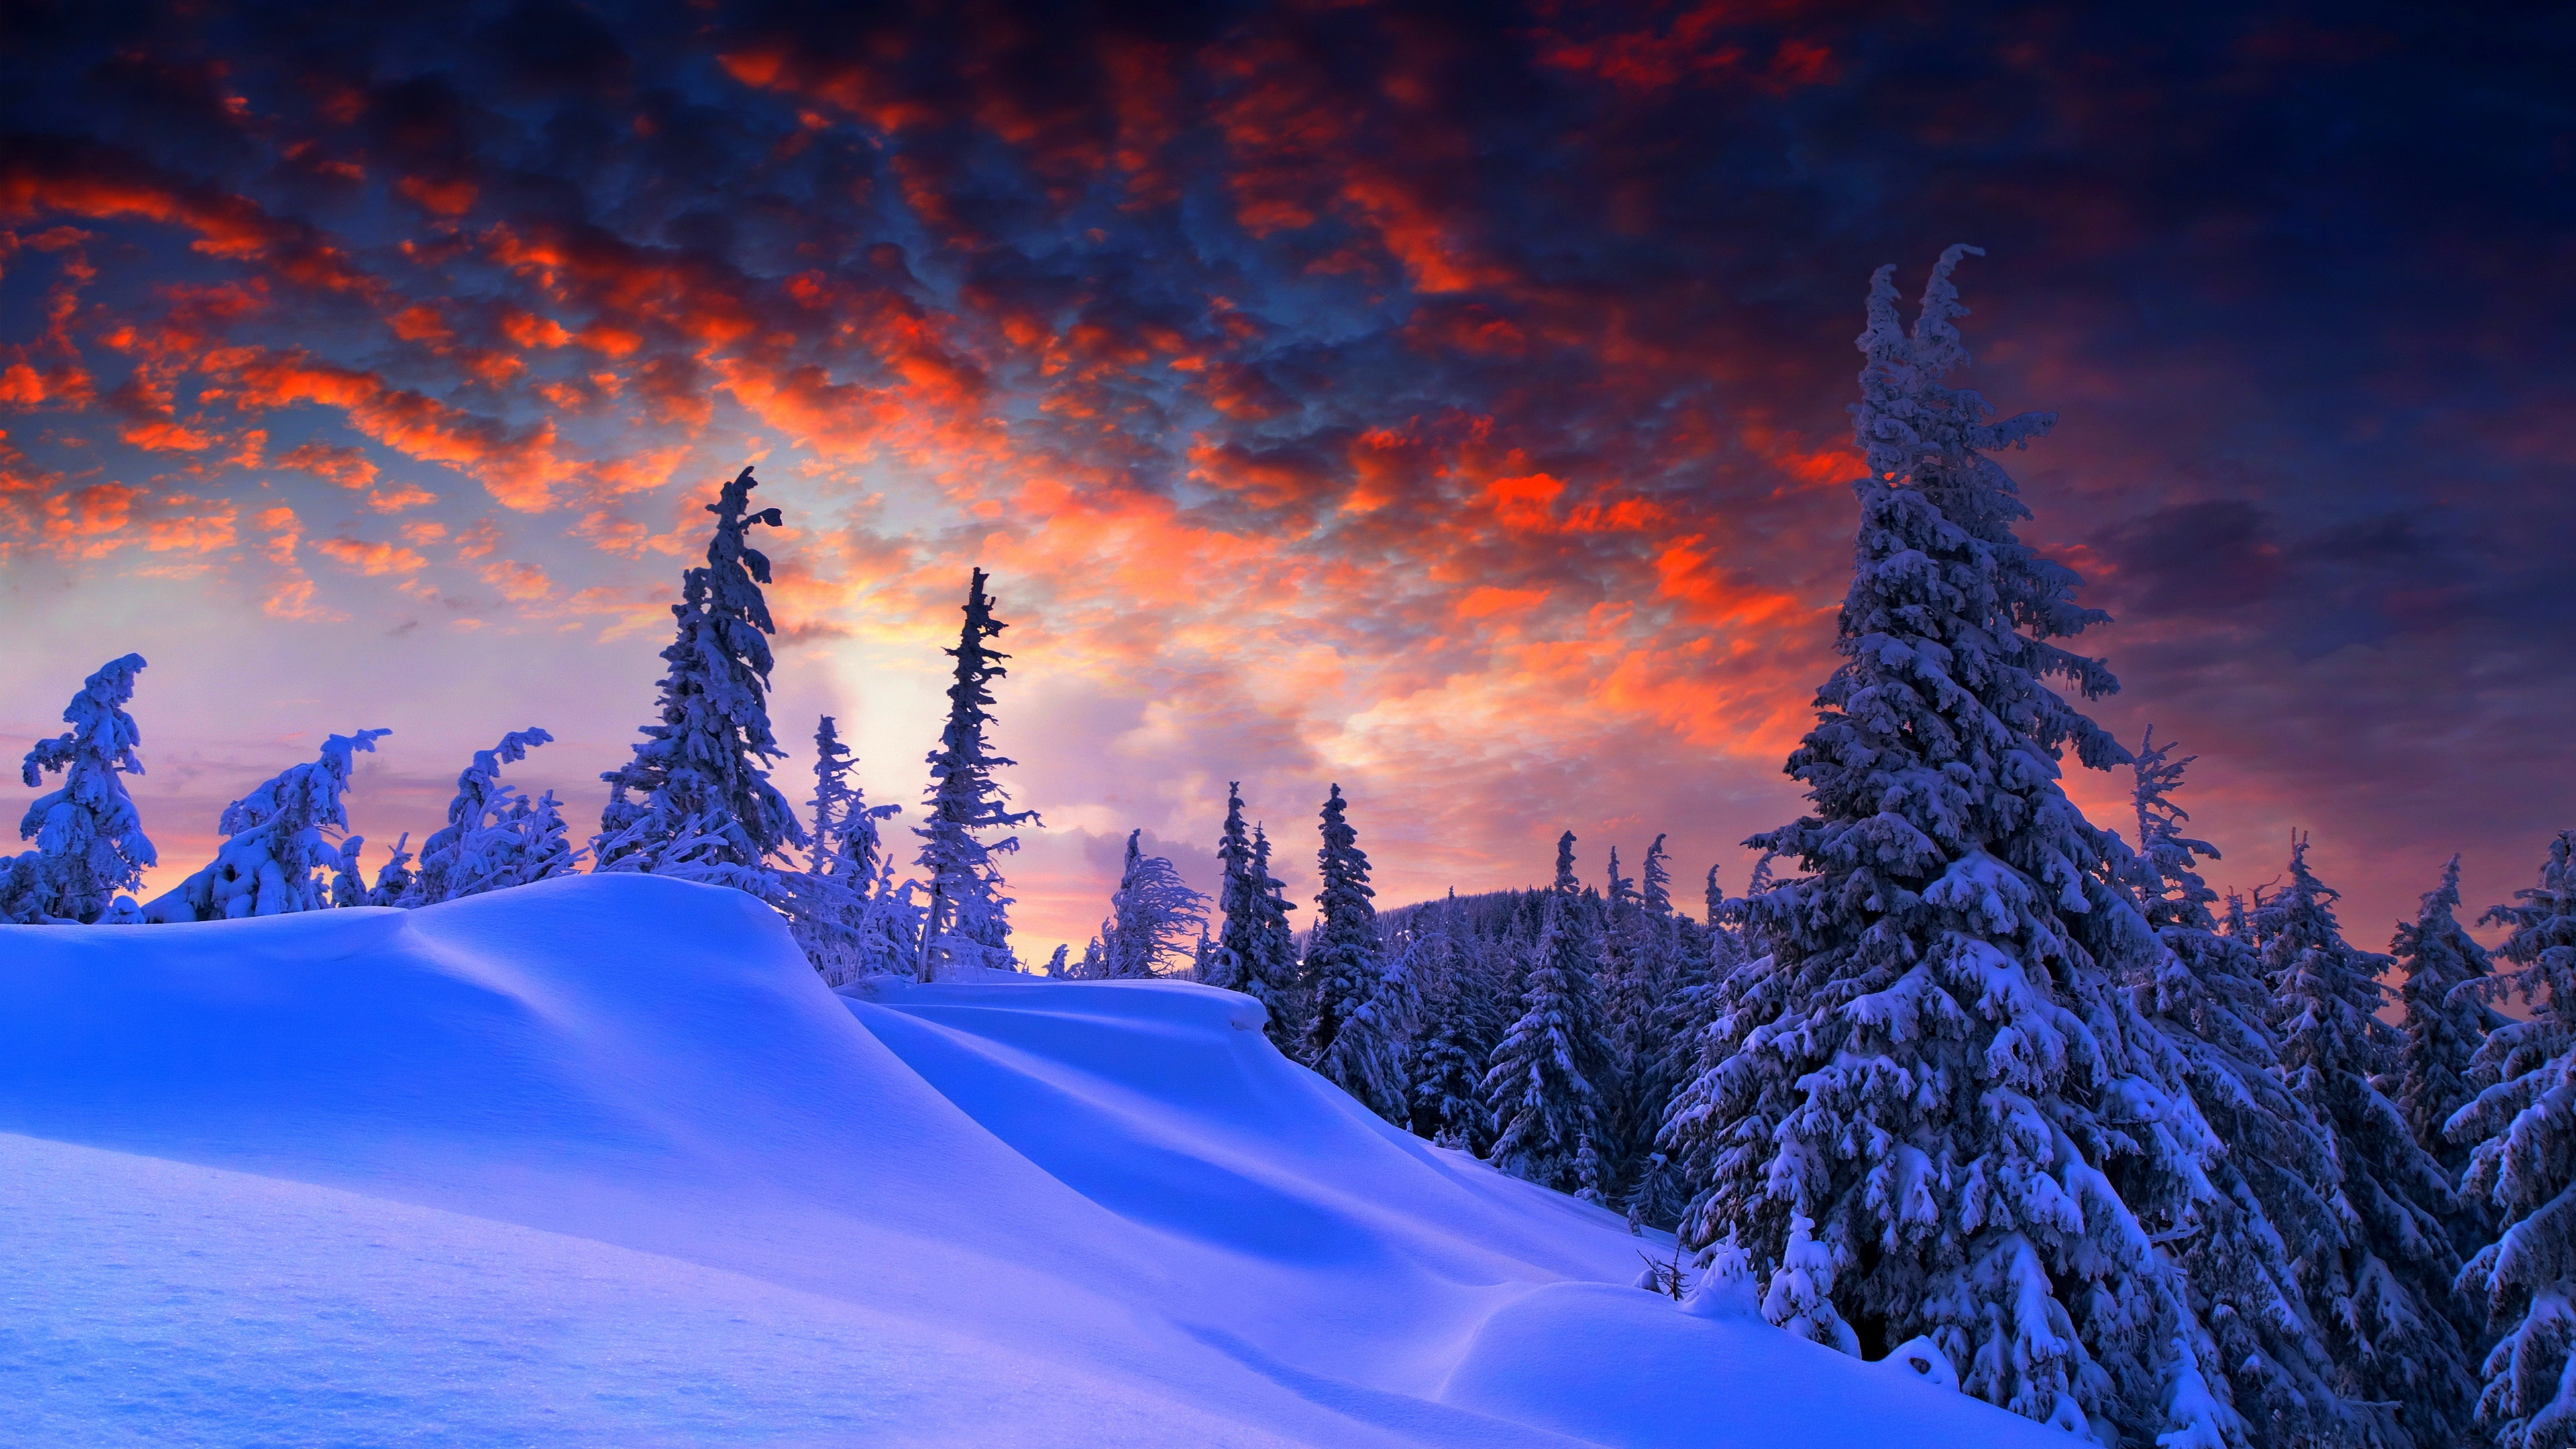 Snowy pine trees at sunset wallpaper